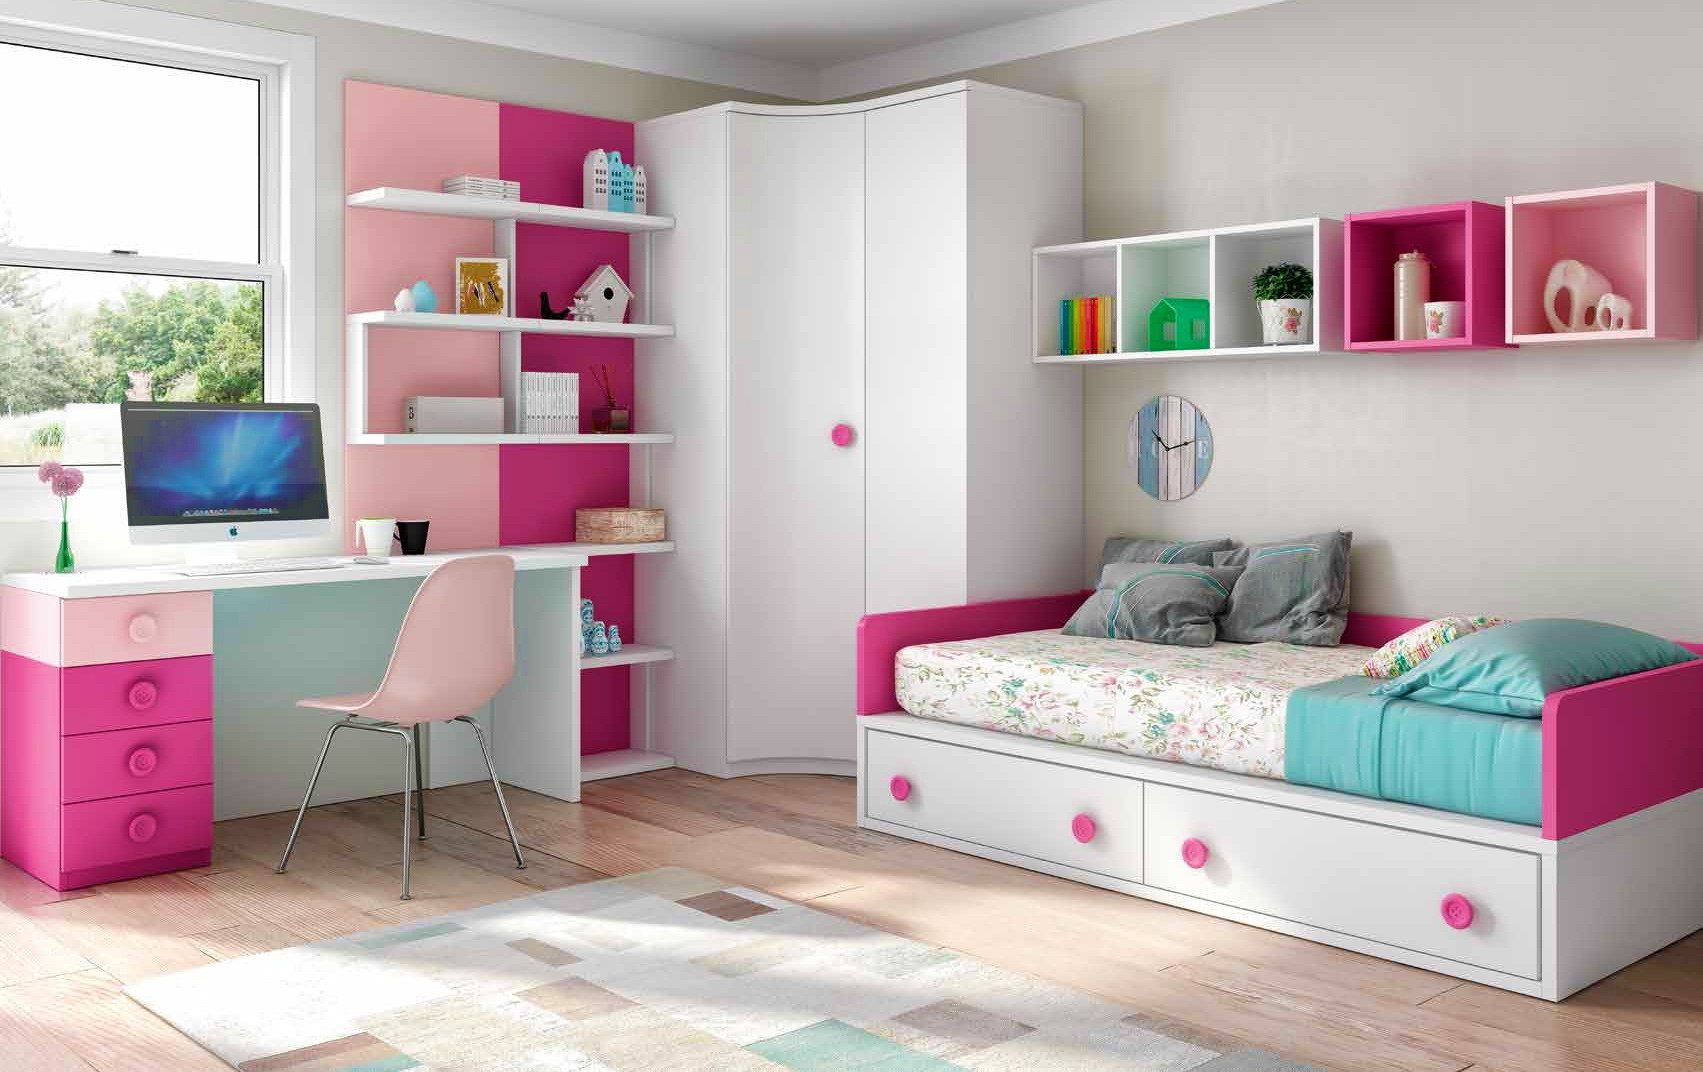 lit d enfant ikea douce ikea meuble chambre unique chambre. Black Bedroom Furniture Sets. Home Design Ideas